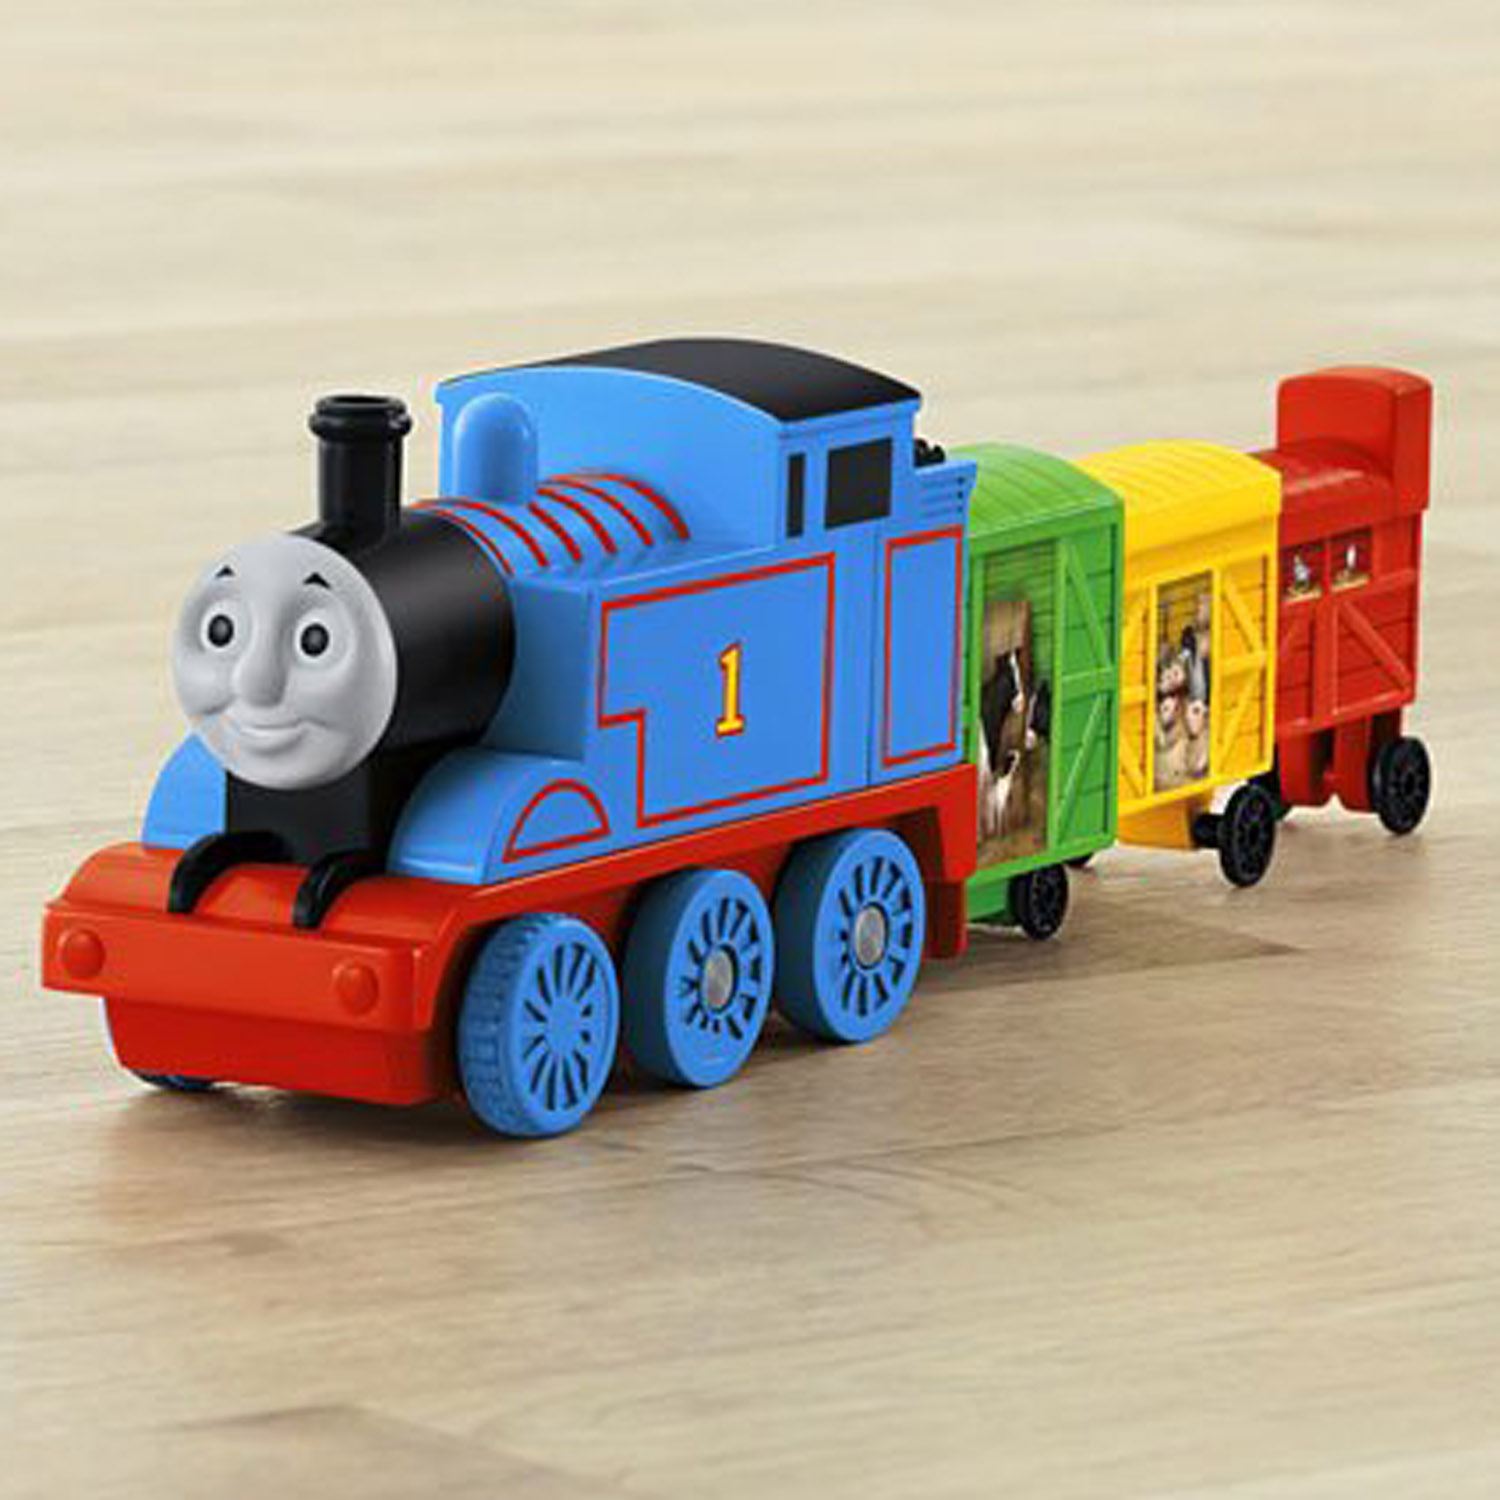 Toy Train Graphics : Train toy cliparts